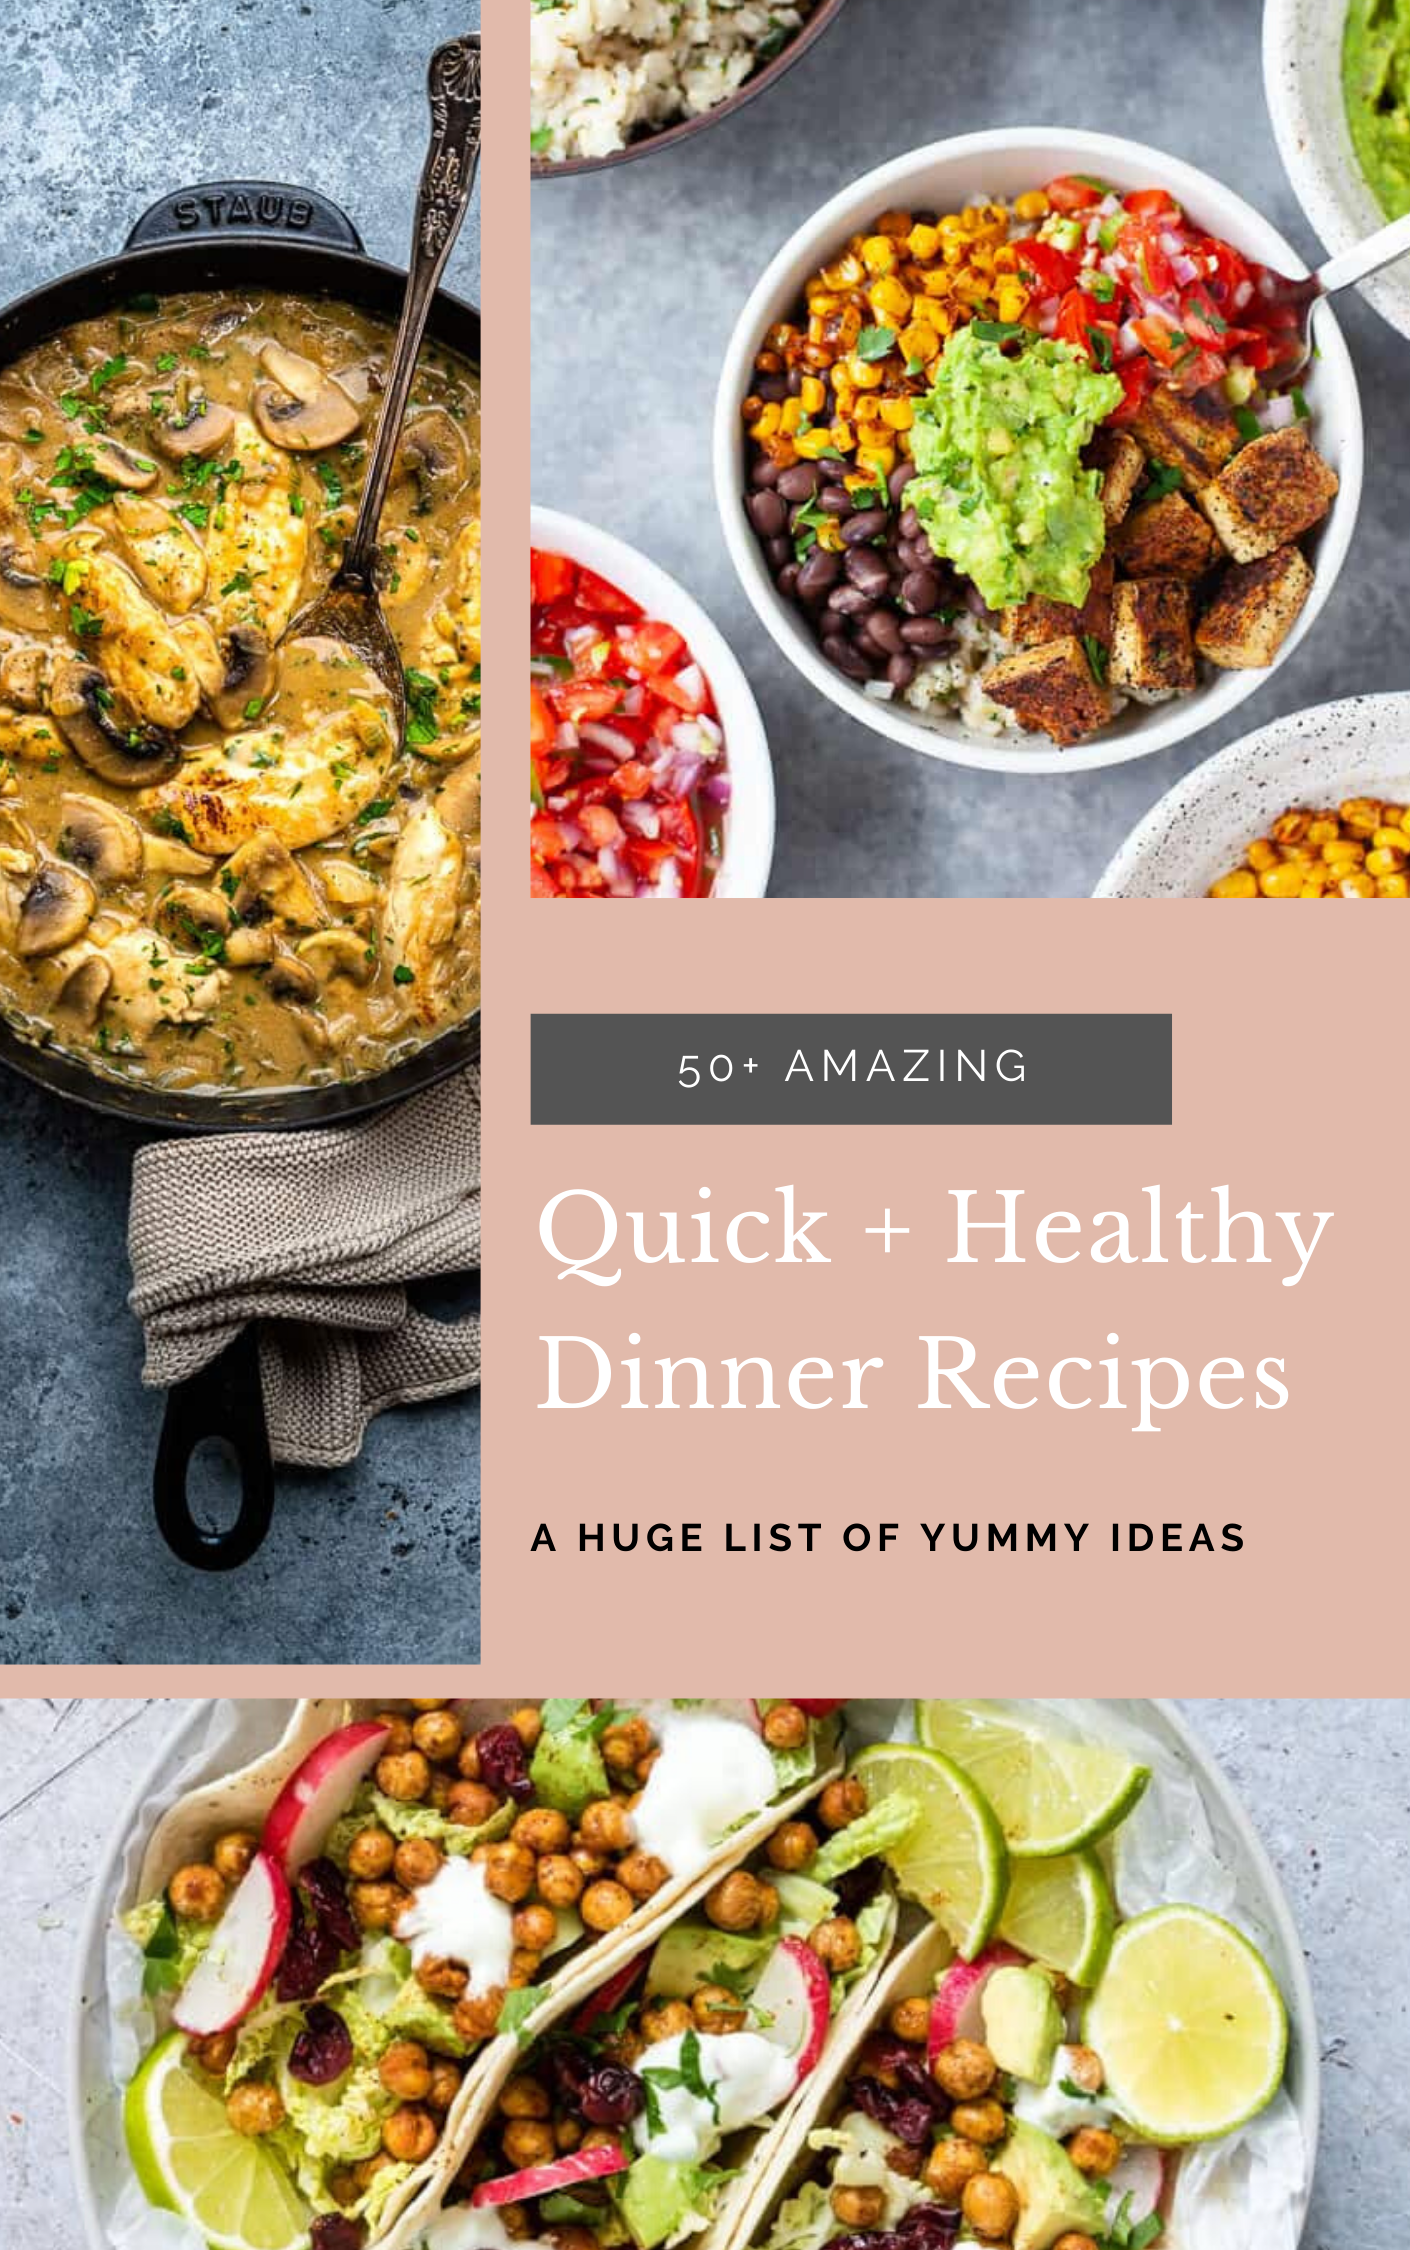 Need quick and healthy dinner recipes for busy weeknights? This recipe roundup has got you covered with more than 50+ easy and healthier dinner ideas! Click through for the recipes. | glitterinc.com | @glitterinc